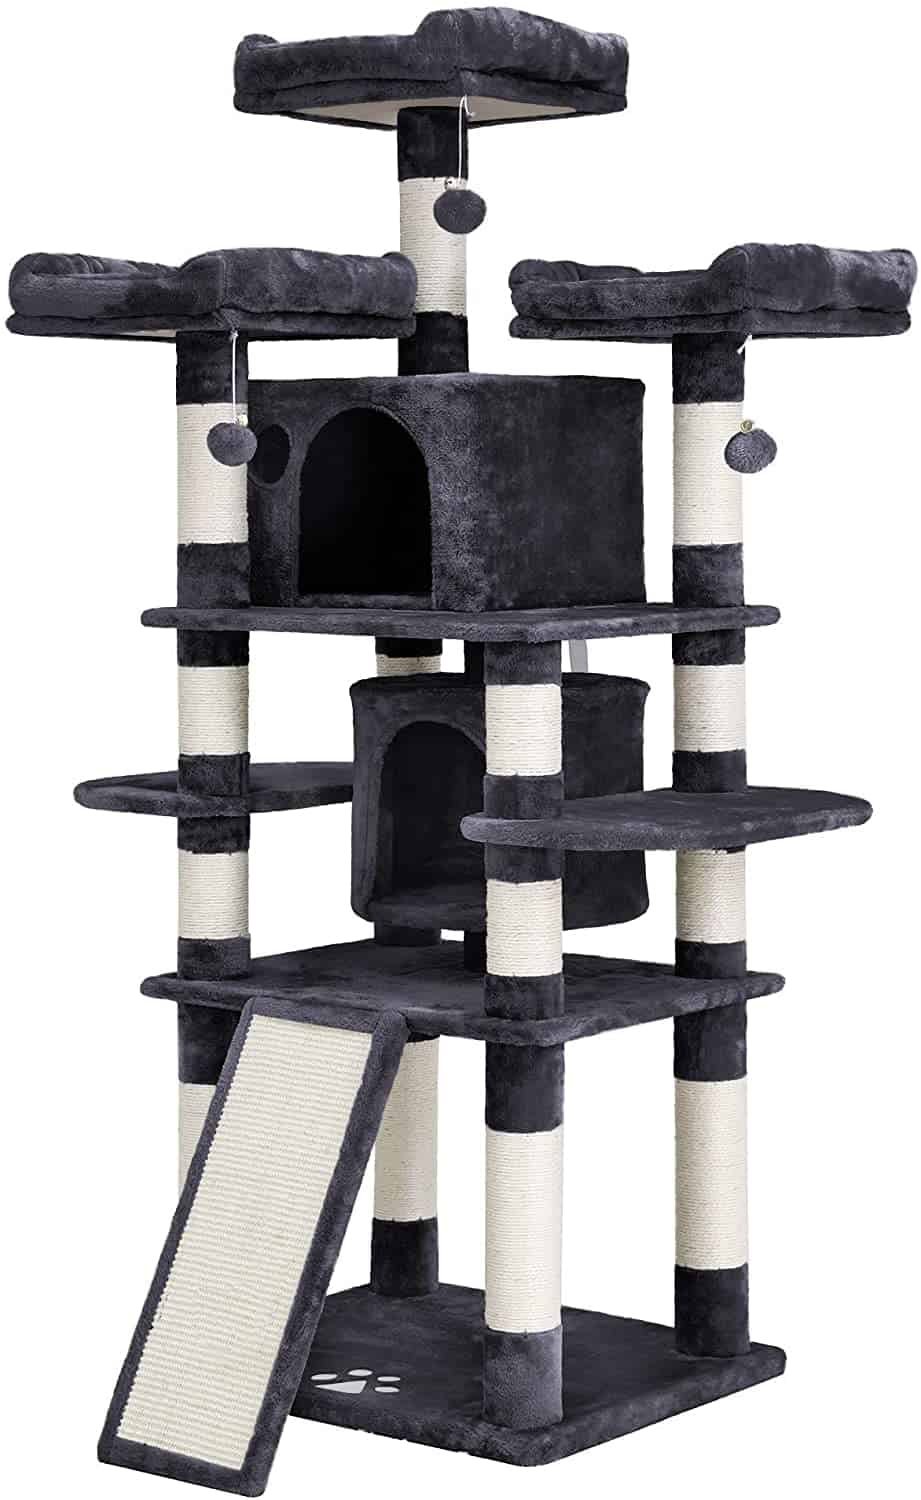 Best Cat Trees For Large Cats - Heavy Duty Big Sturdy Cat Towers [2020] 11